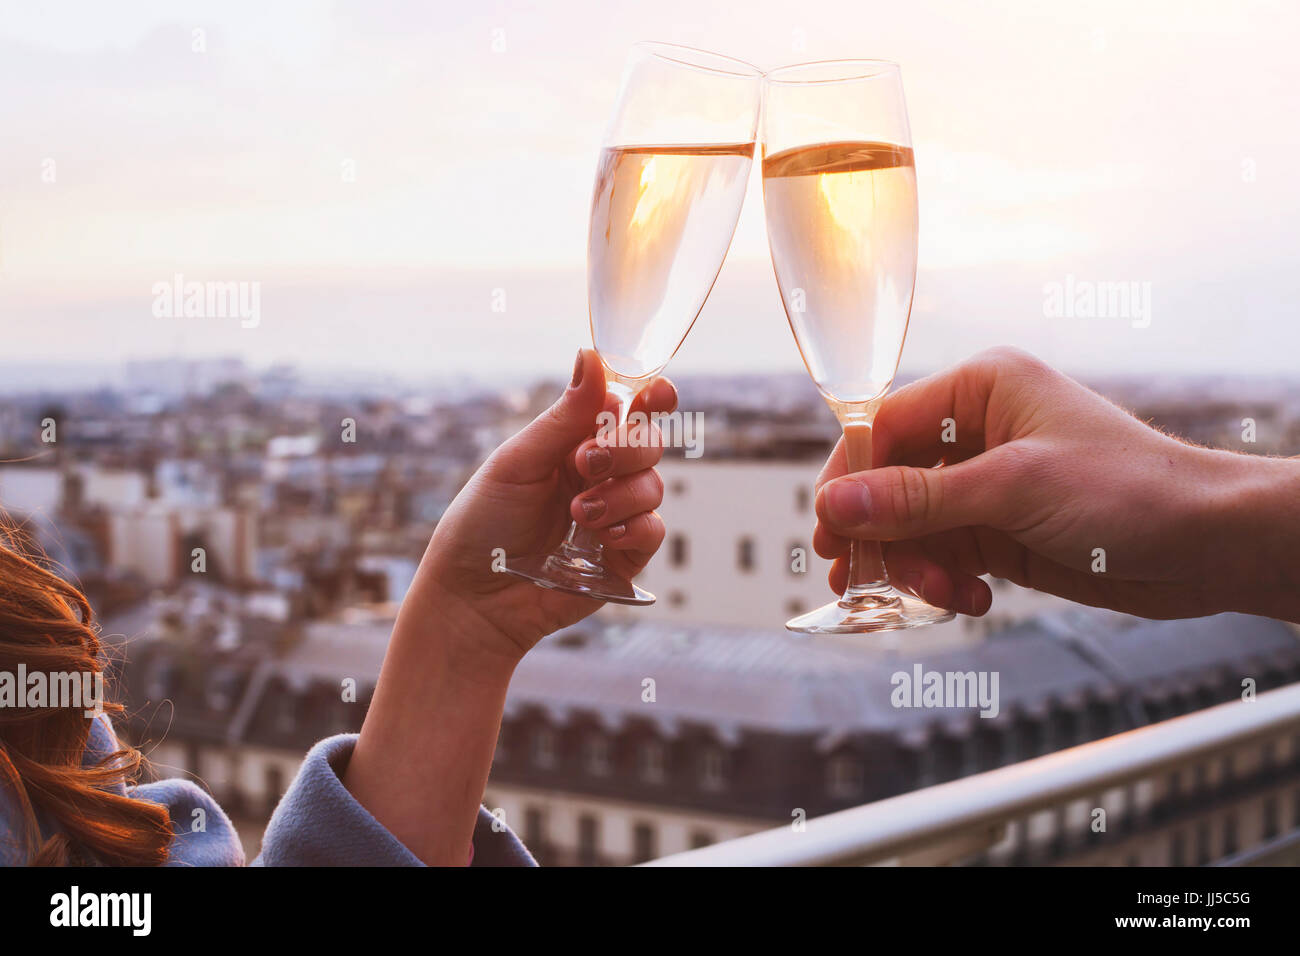 two glasses of champagne or wine, couple dating concept, romantic celebration of engagement or anniversary - Stock Image